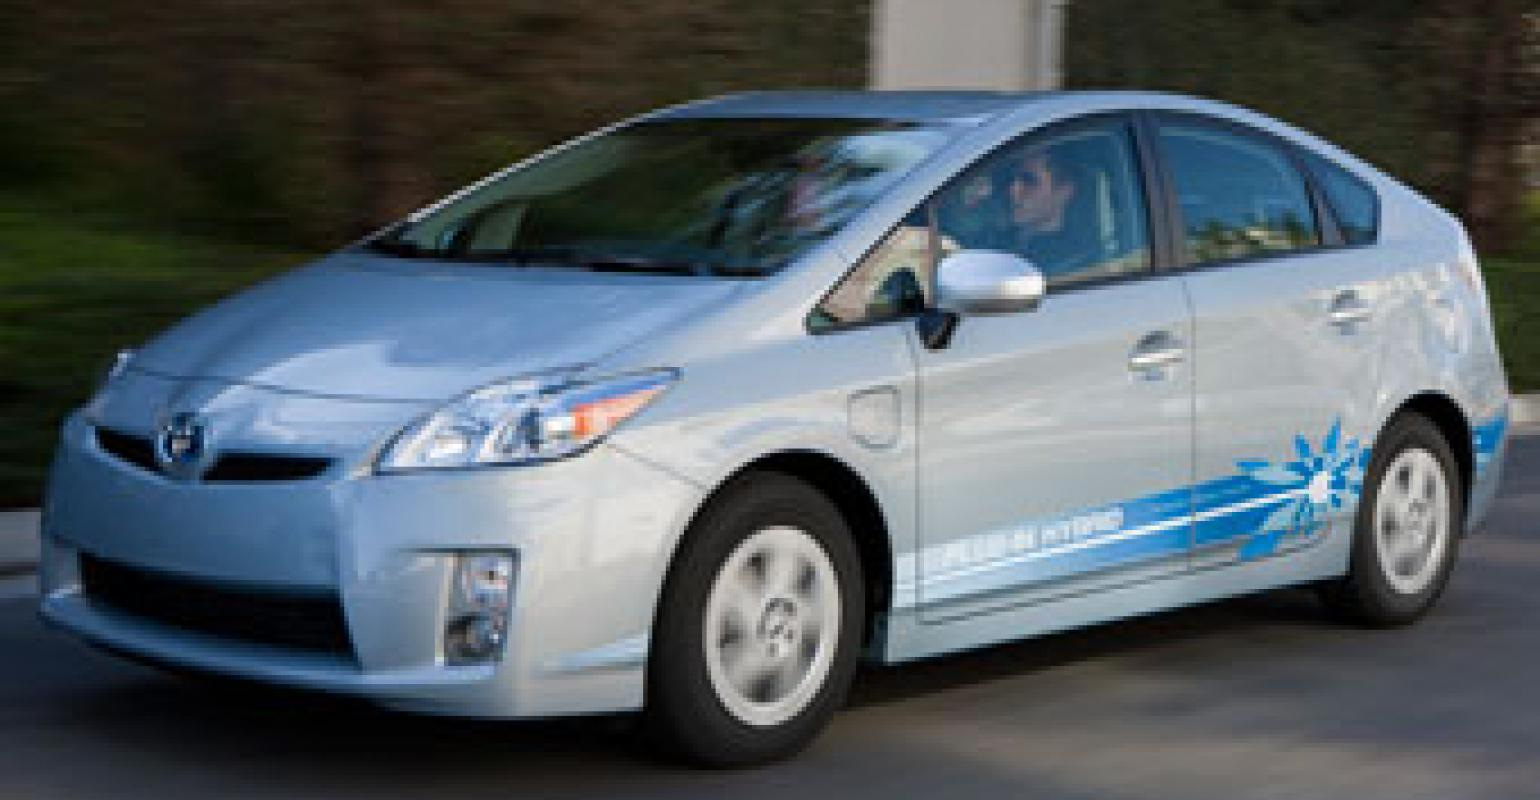 Toyota Planning More Evs Expecting Regional Demand For Prius Plug In